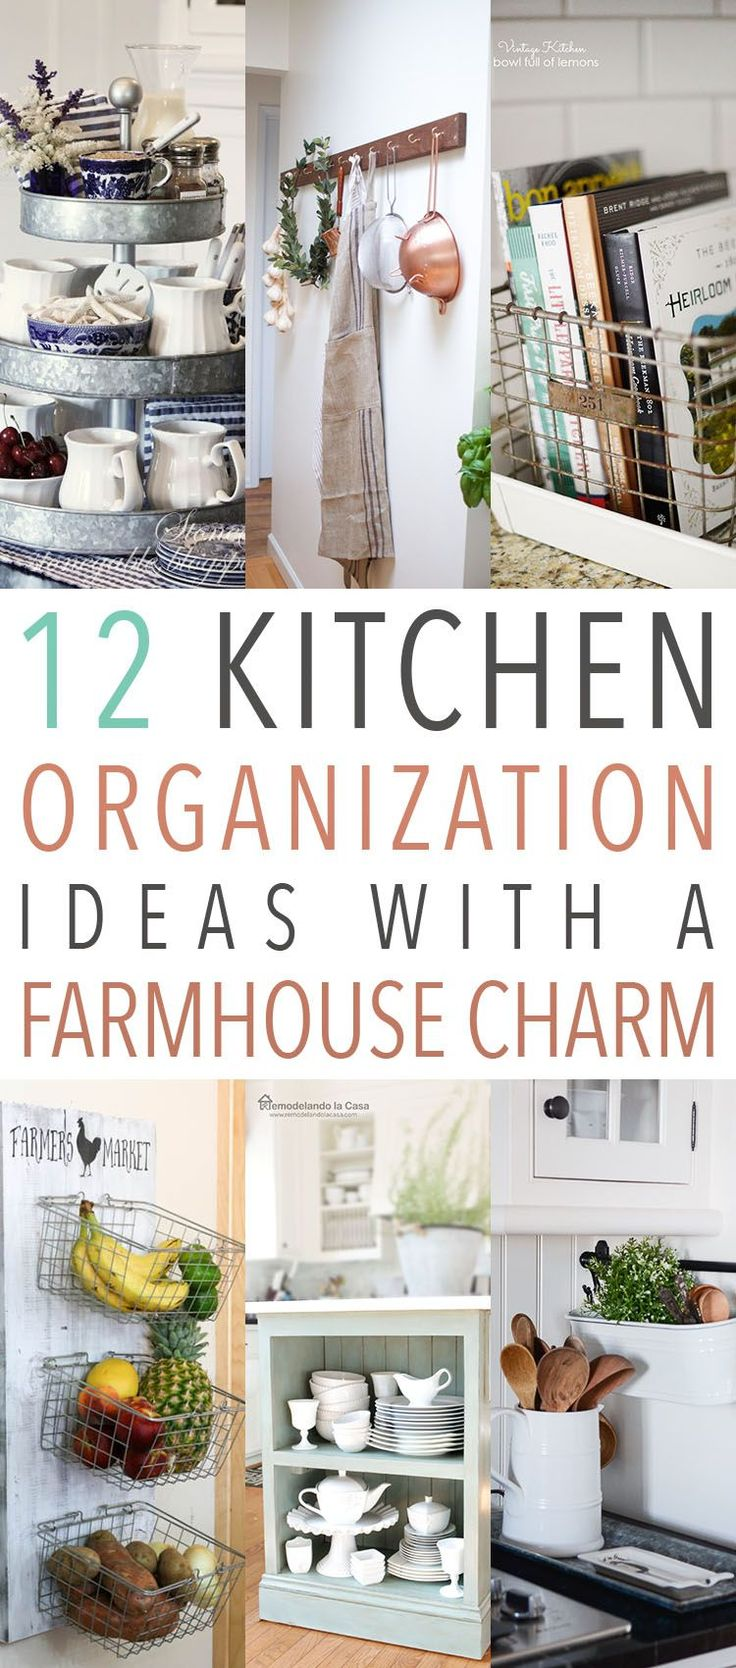 12 Kitchen Organization Ideas With A Farmhouse Charm! Come and get the Fixer Upper Style even when organizing!